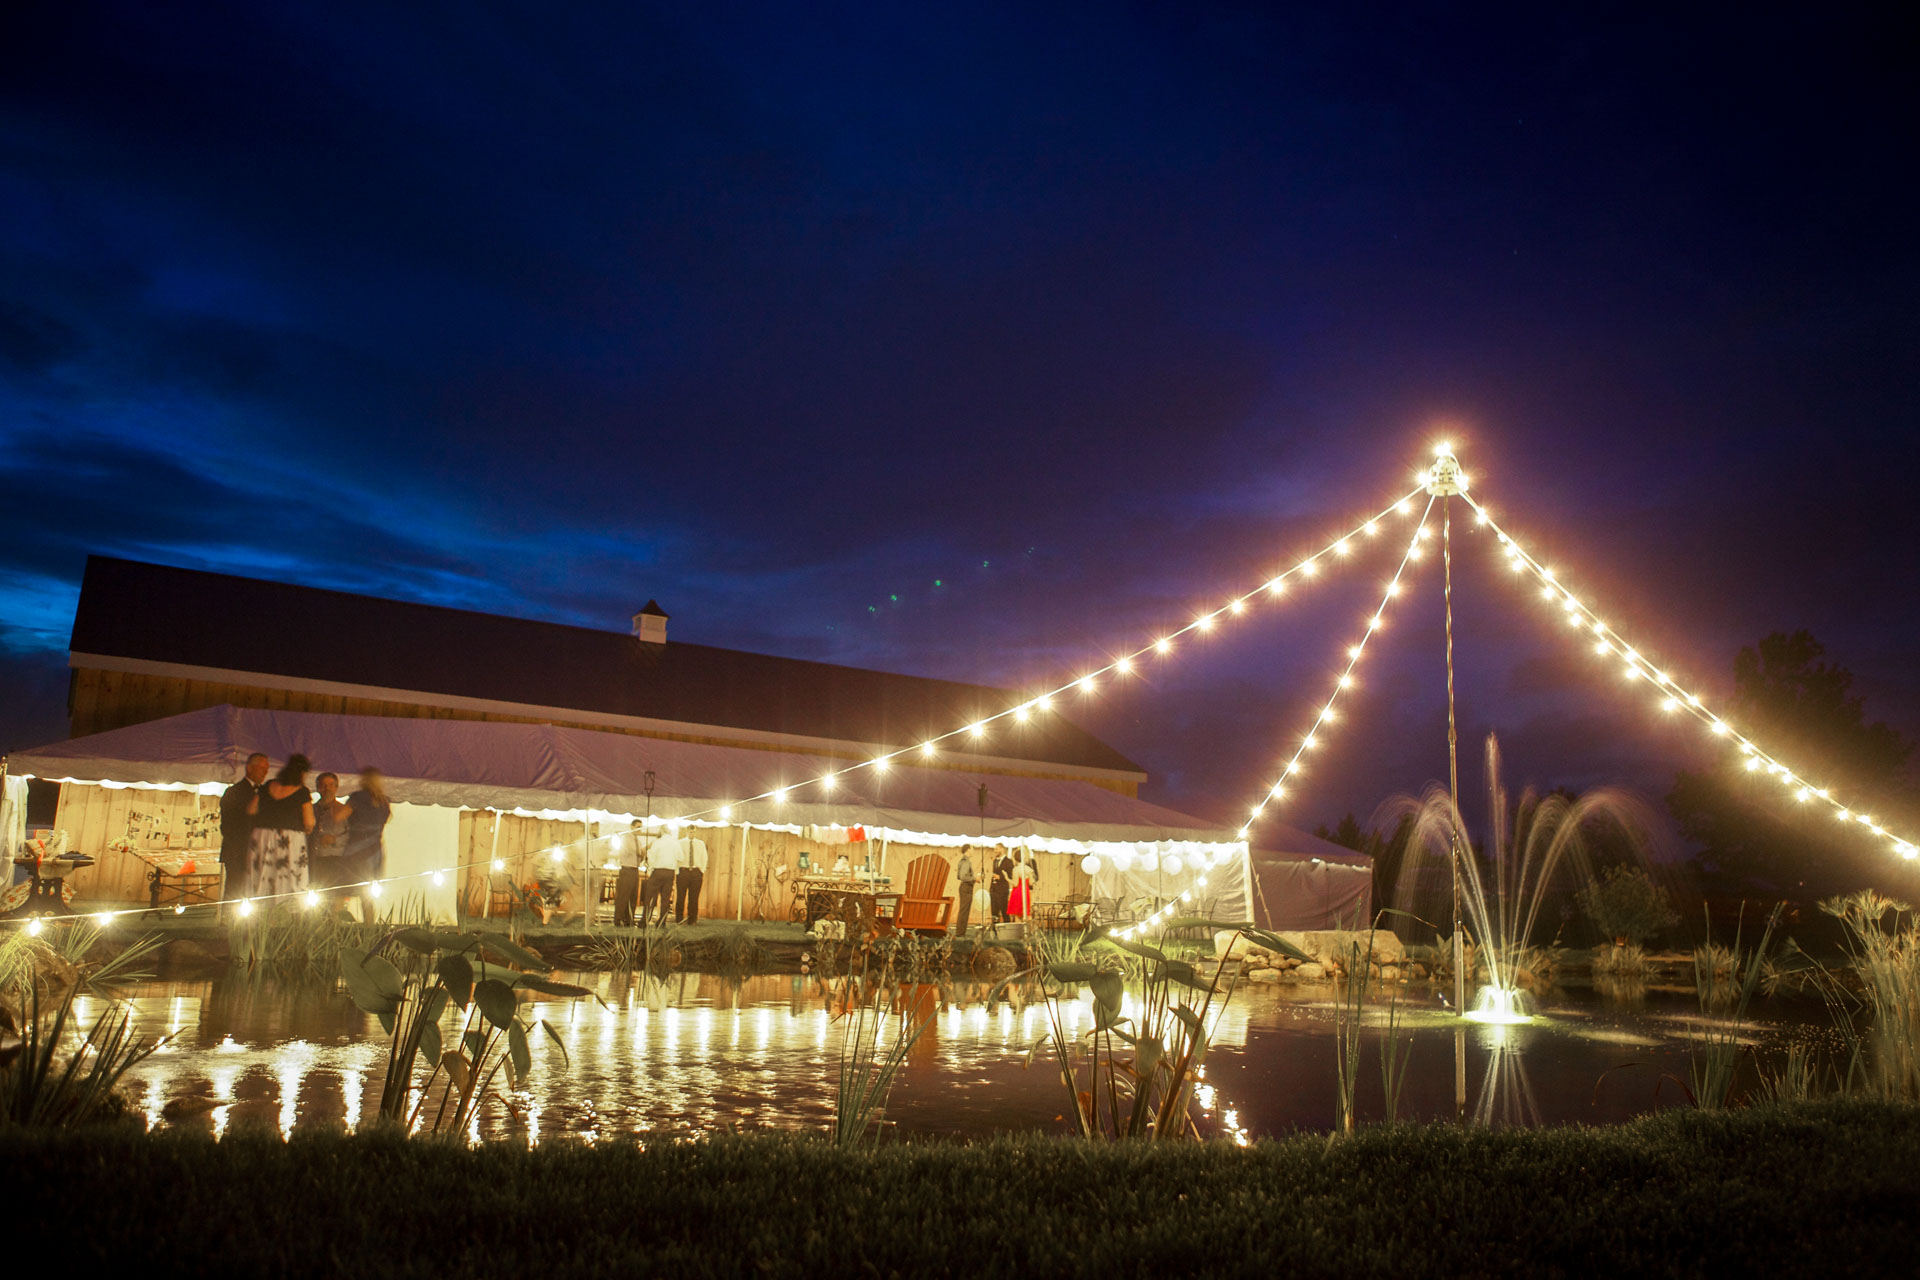 Barn, function, wedding planner, events planner, classic car shop